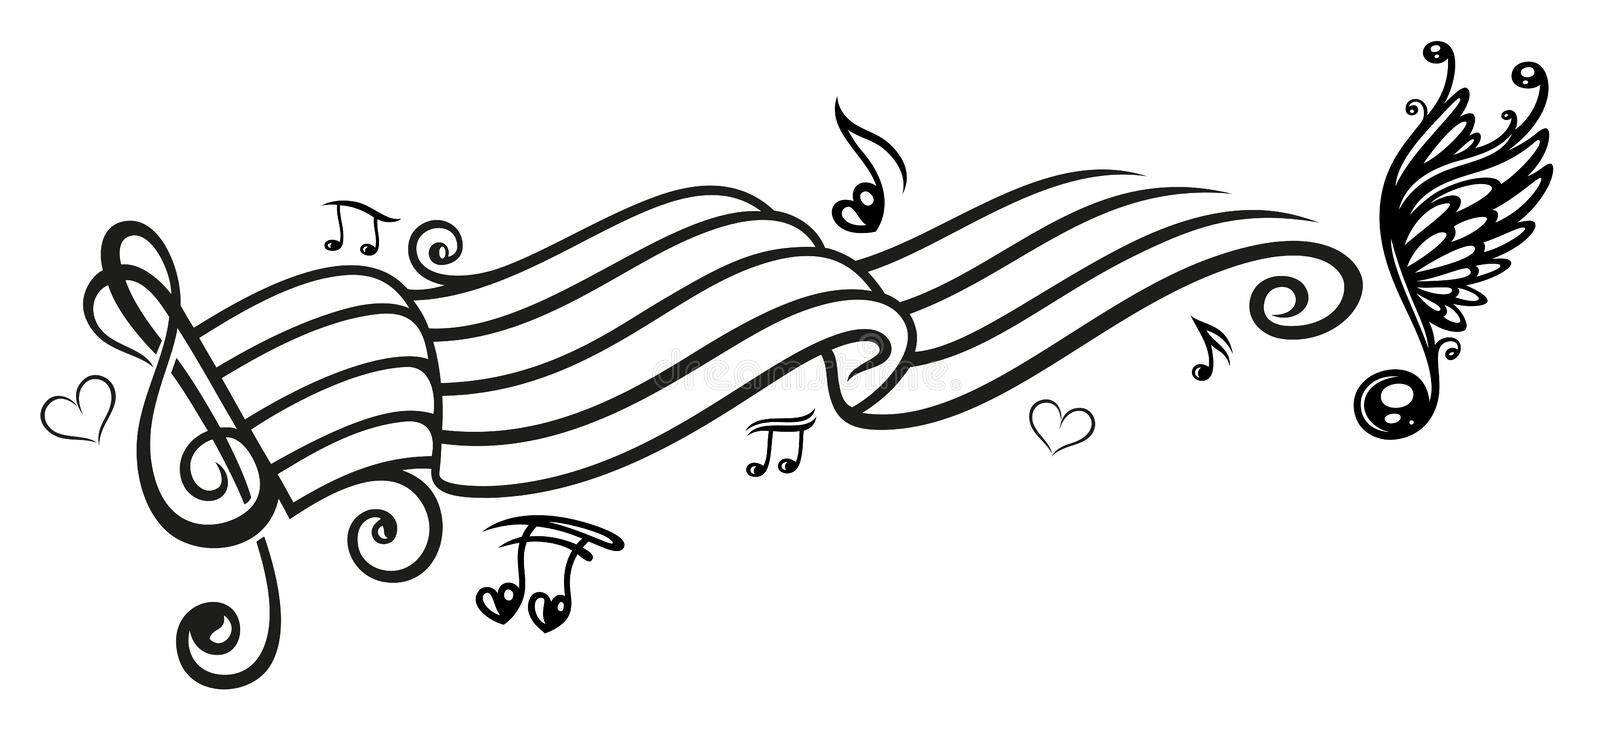 Music, music notes, clef. Clef with music notes, black tribal royalty free illustration